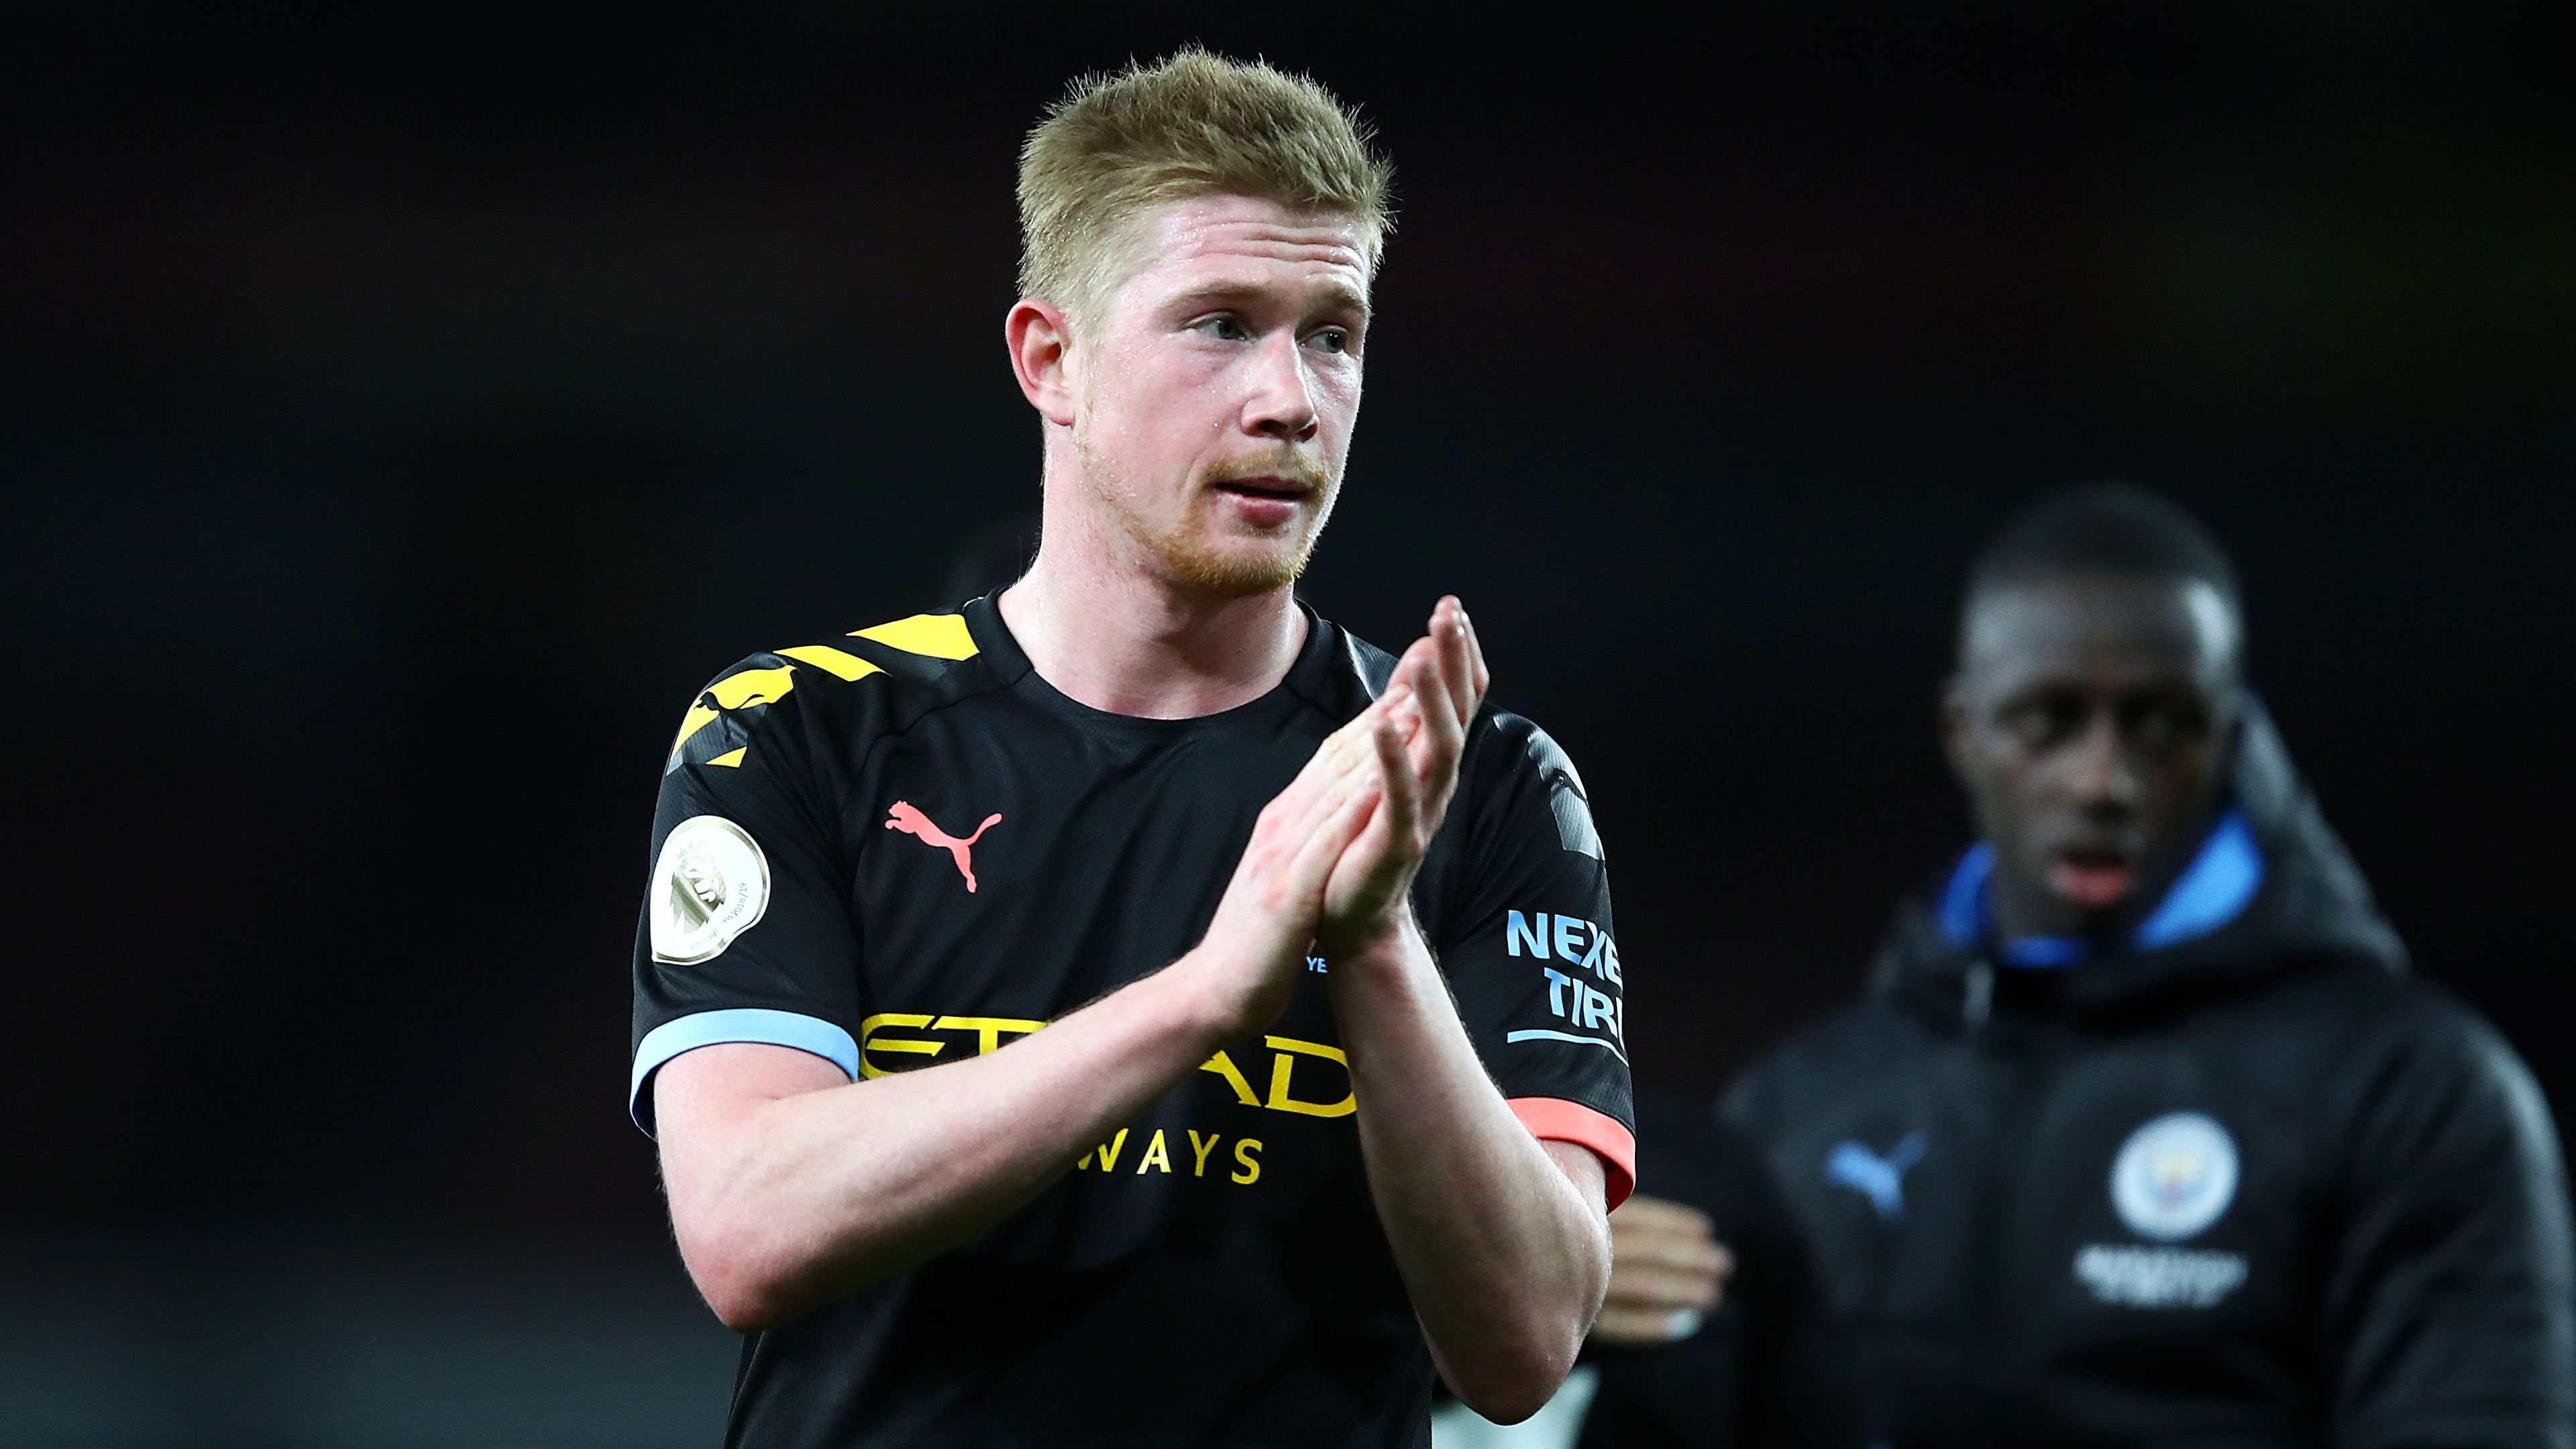 manchester city s de bruyne vows to play two extra years after virus lockdown